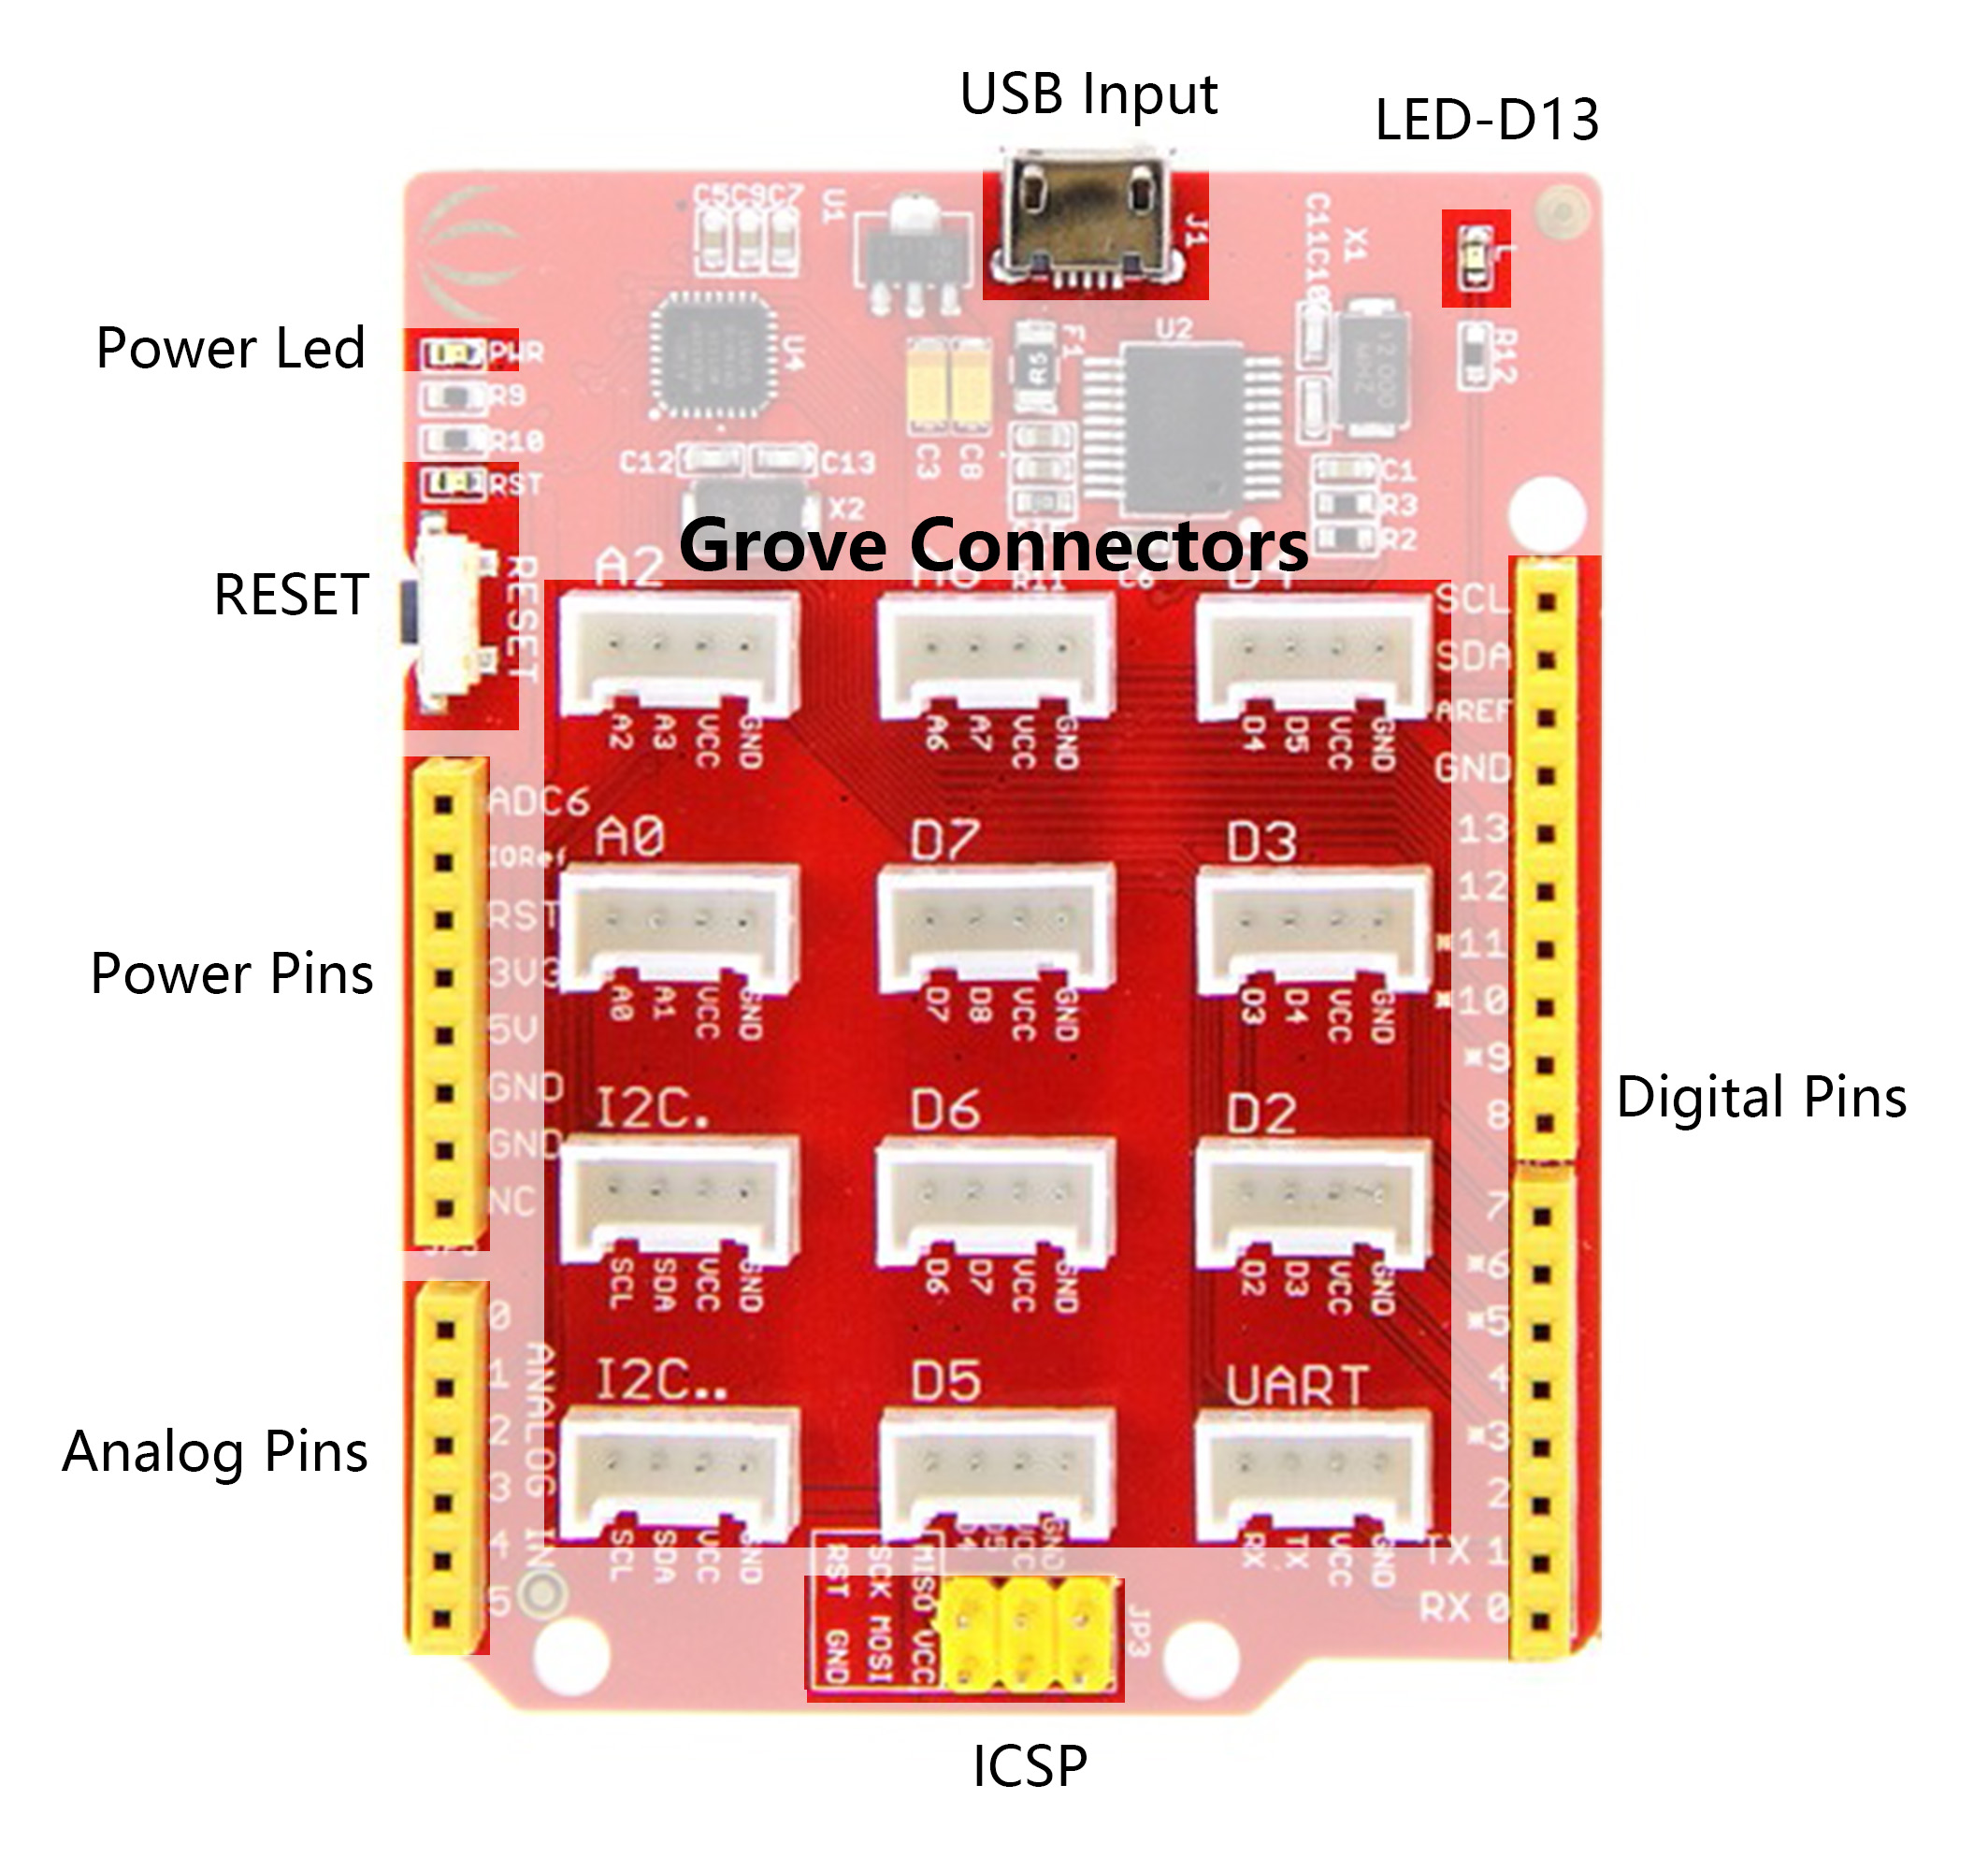 Seeeduino Lotus Led Wiring Diagram Additionally Micro Usb Pinout Also The Pin Out And Alternate Functions Of Various Pins Are Shown In This Could Be Used As A Quick Reference